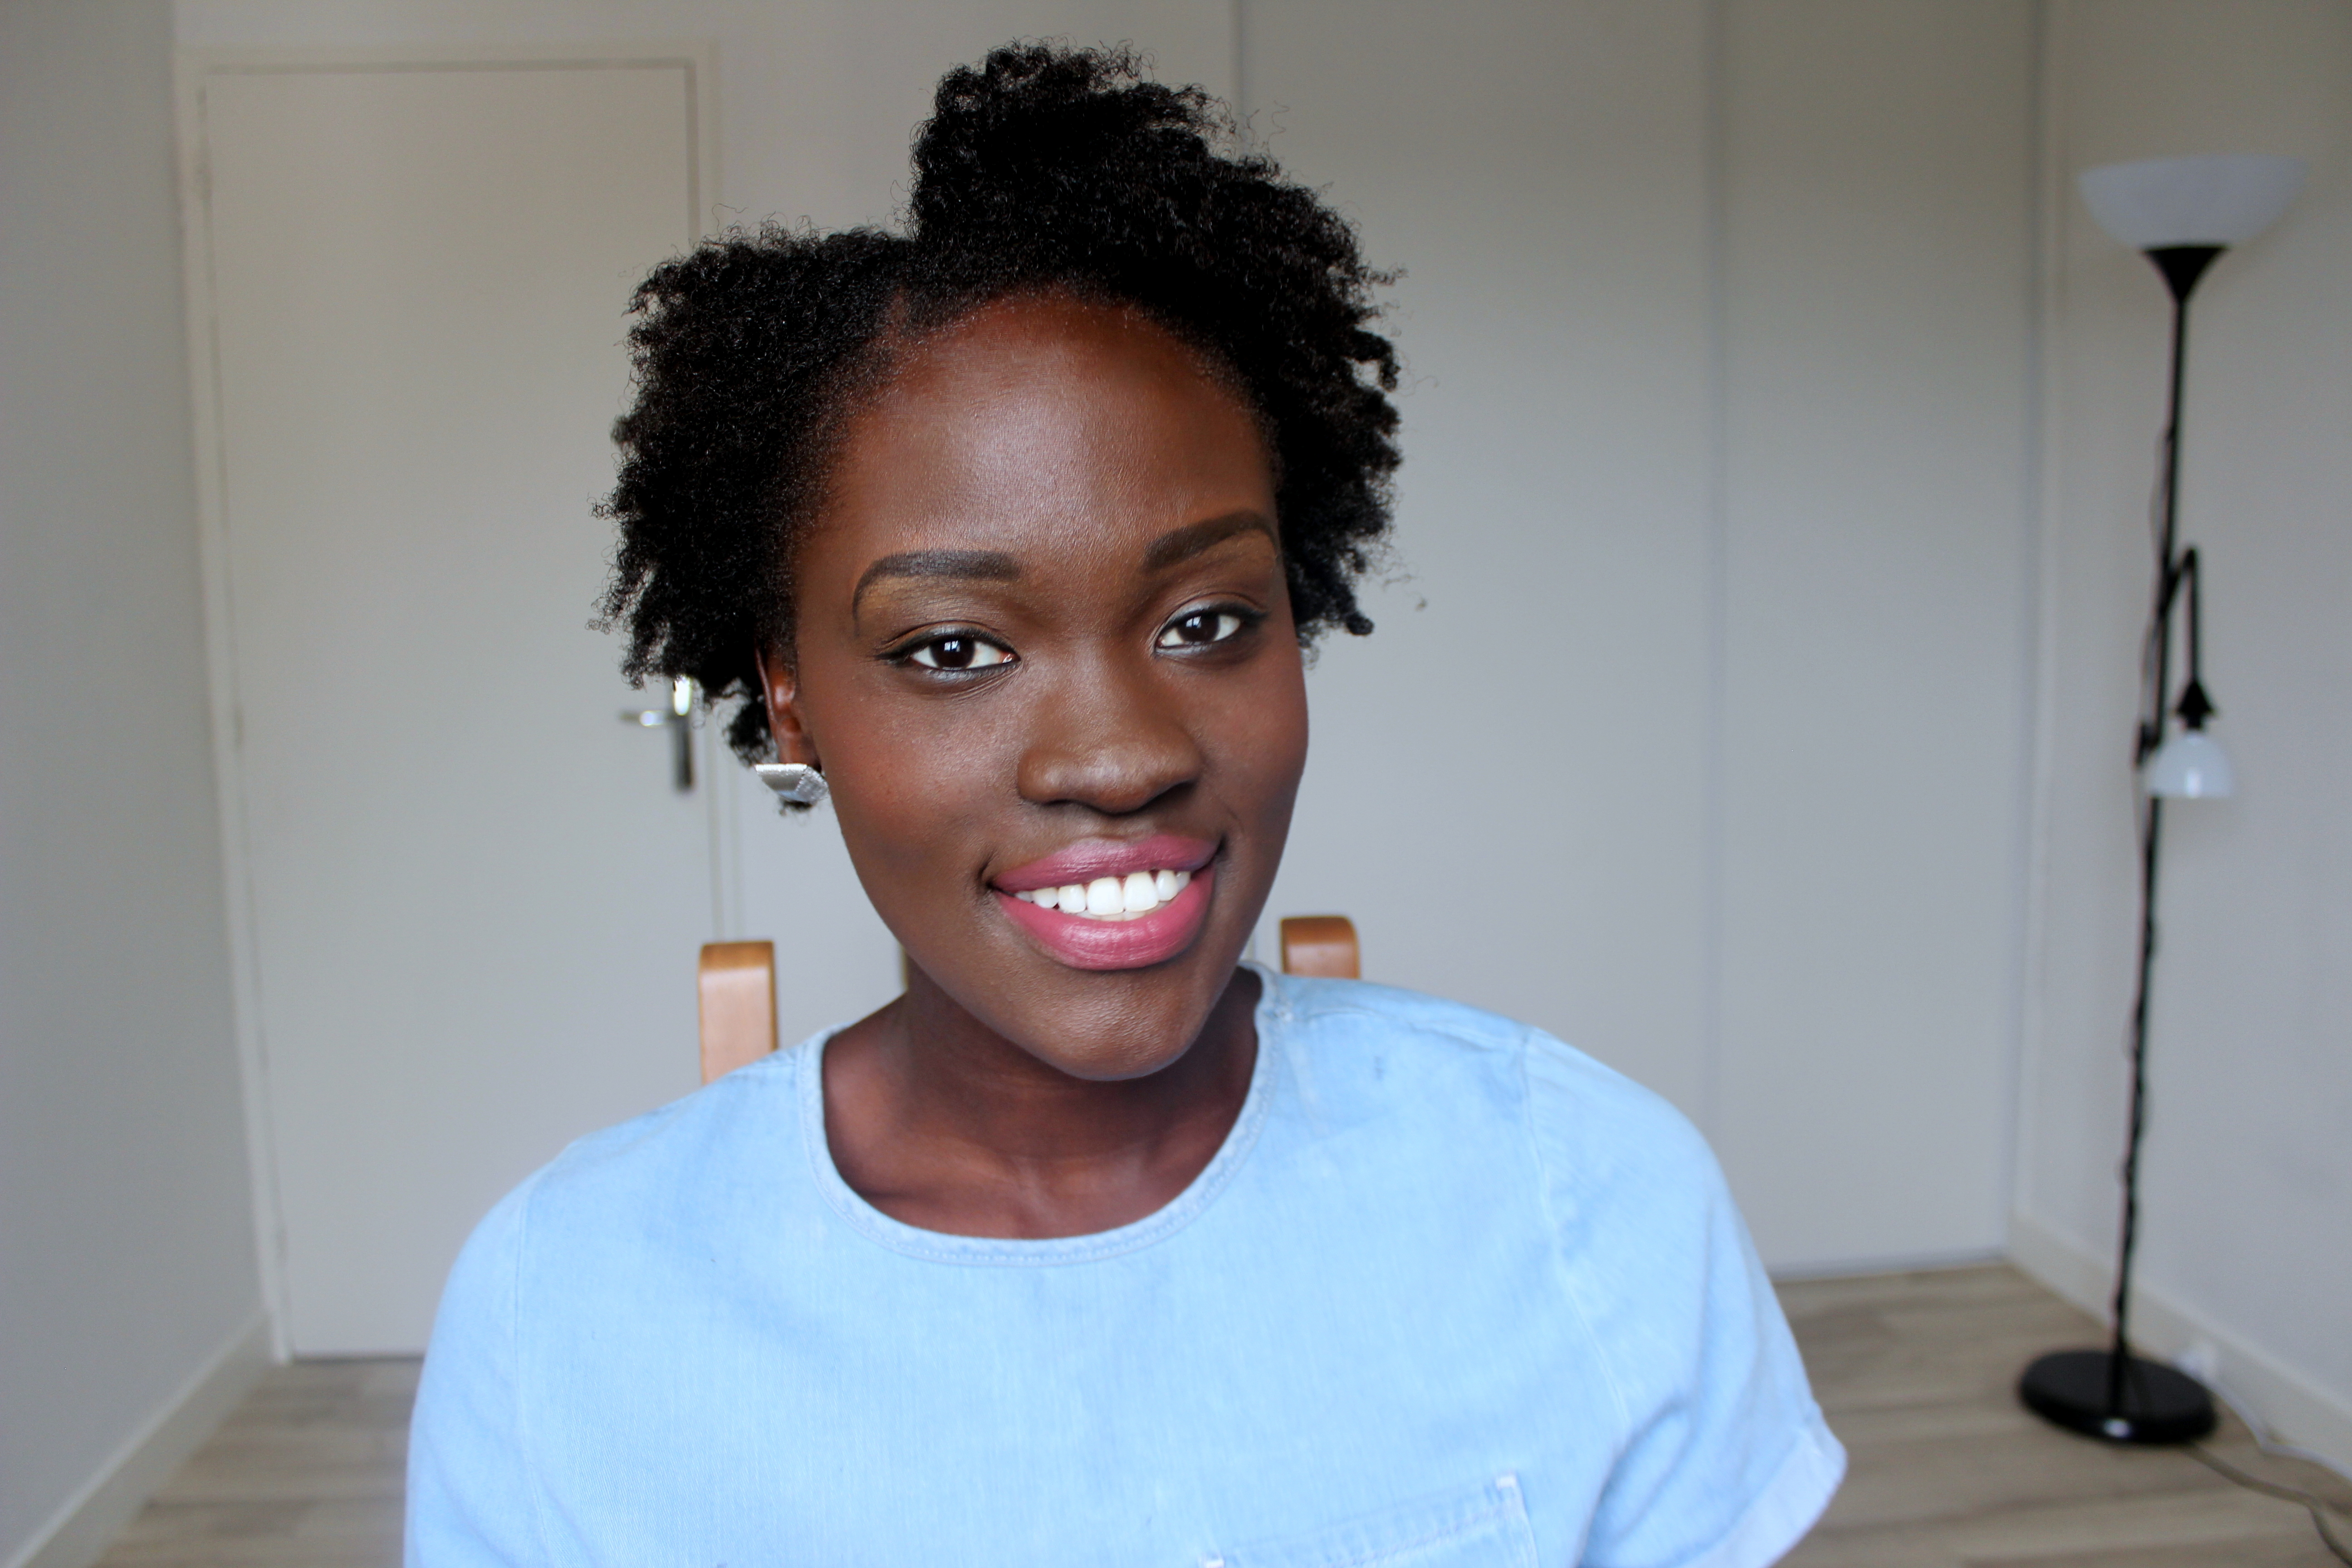 Flat Twist-Out Tutorial On 4C Short Afro